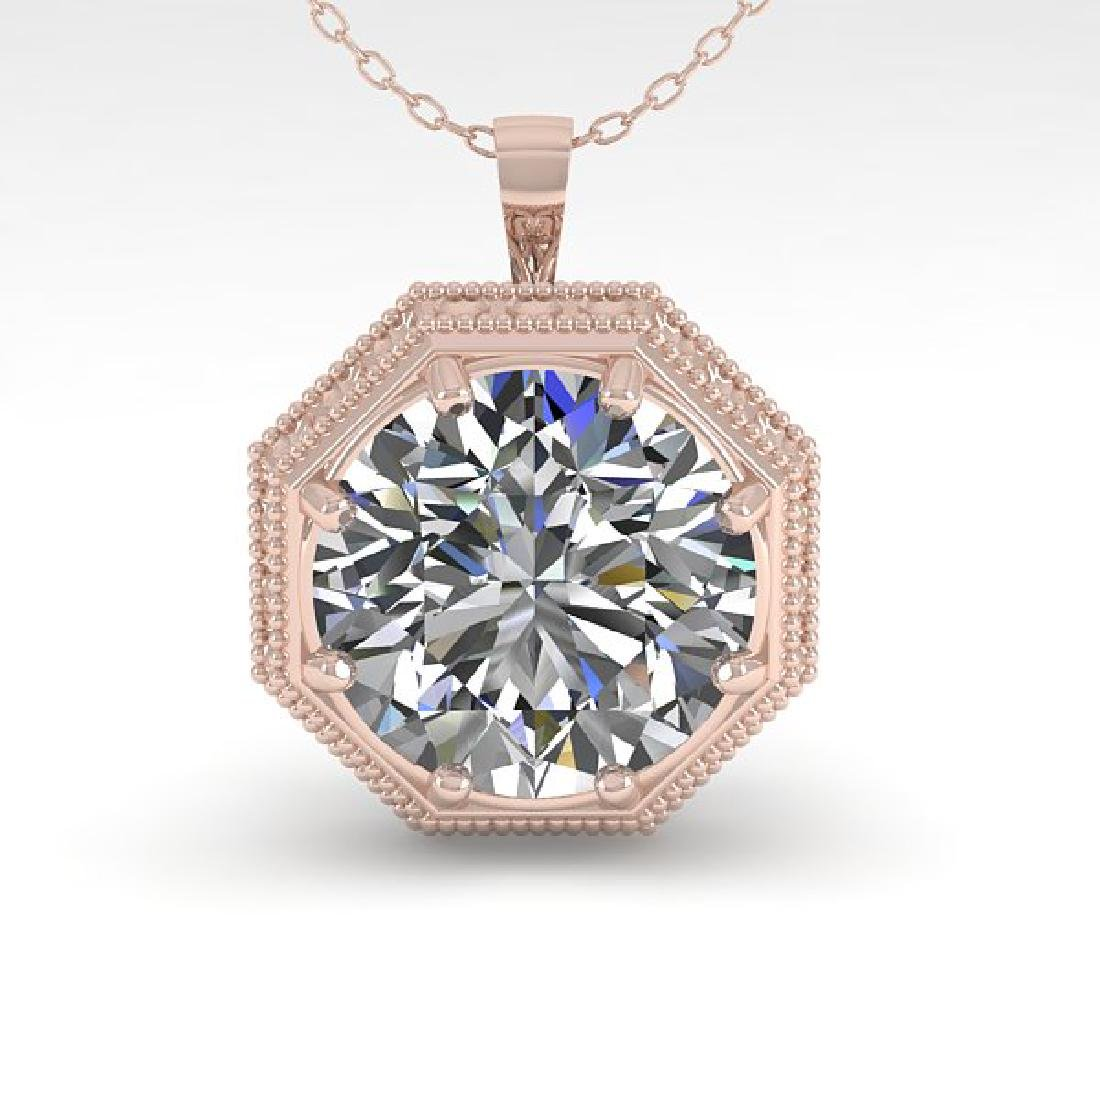 1 CTW VS/SI Diamond Solitaire Necklace 14K Rose Gold - 2